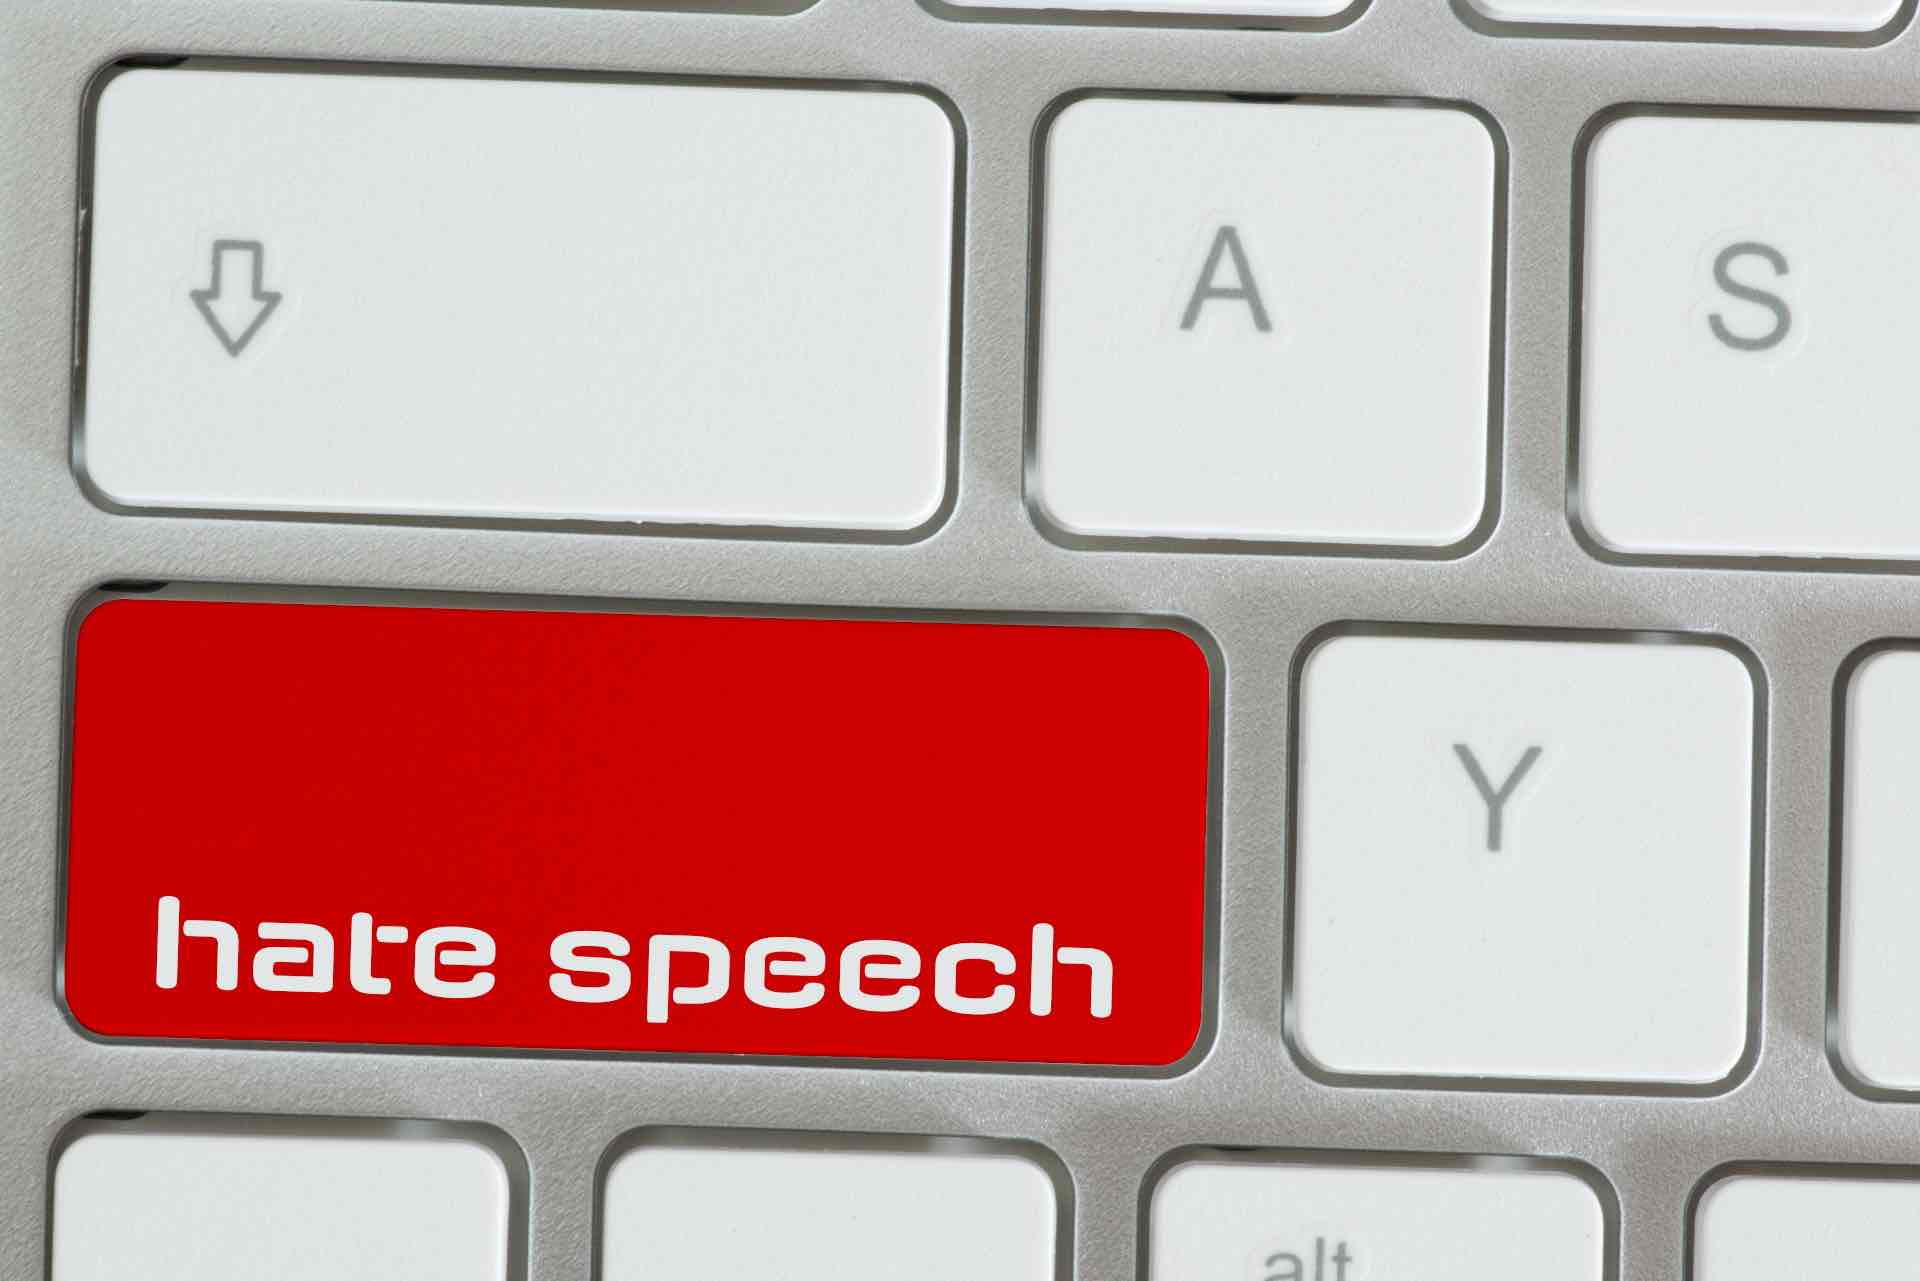 Computer_Tastatur_mit_den_Worten_Hate_Speech